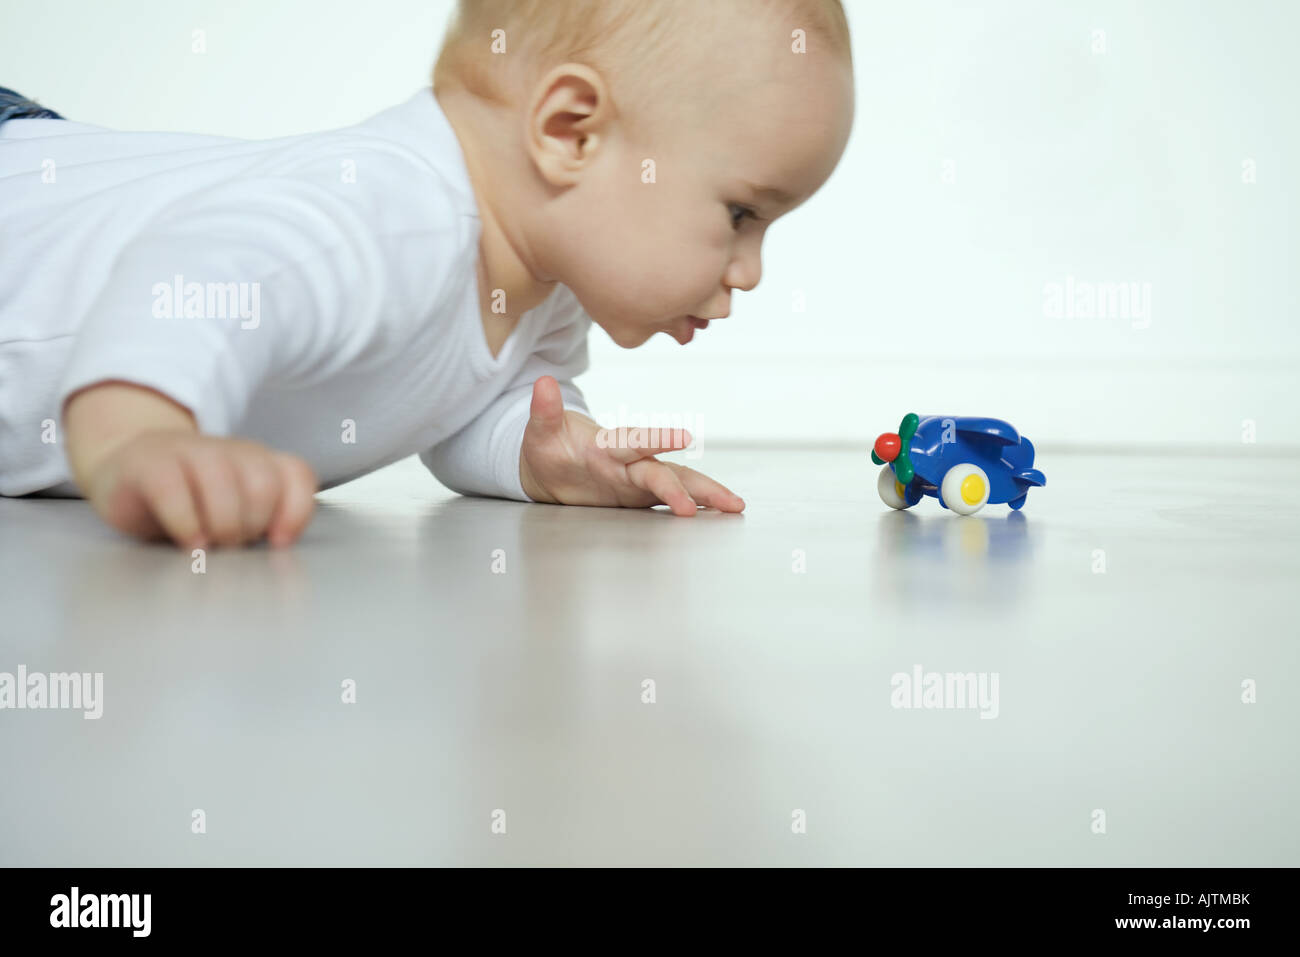 Baby lying on floor, looking at toy airplane - Stock Image